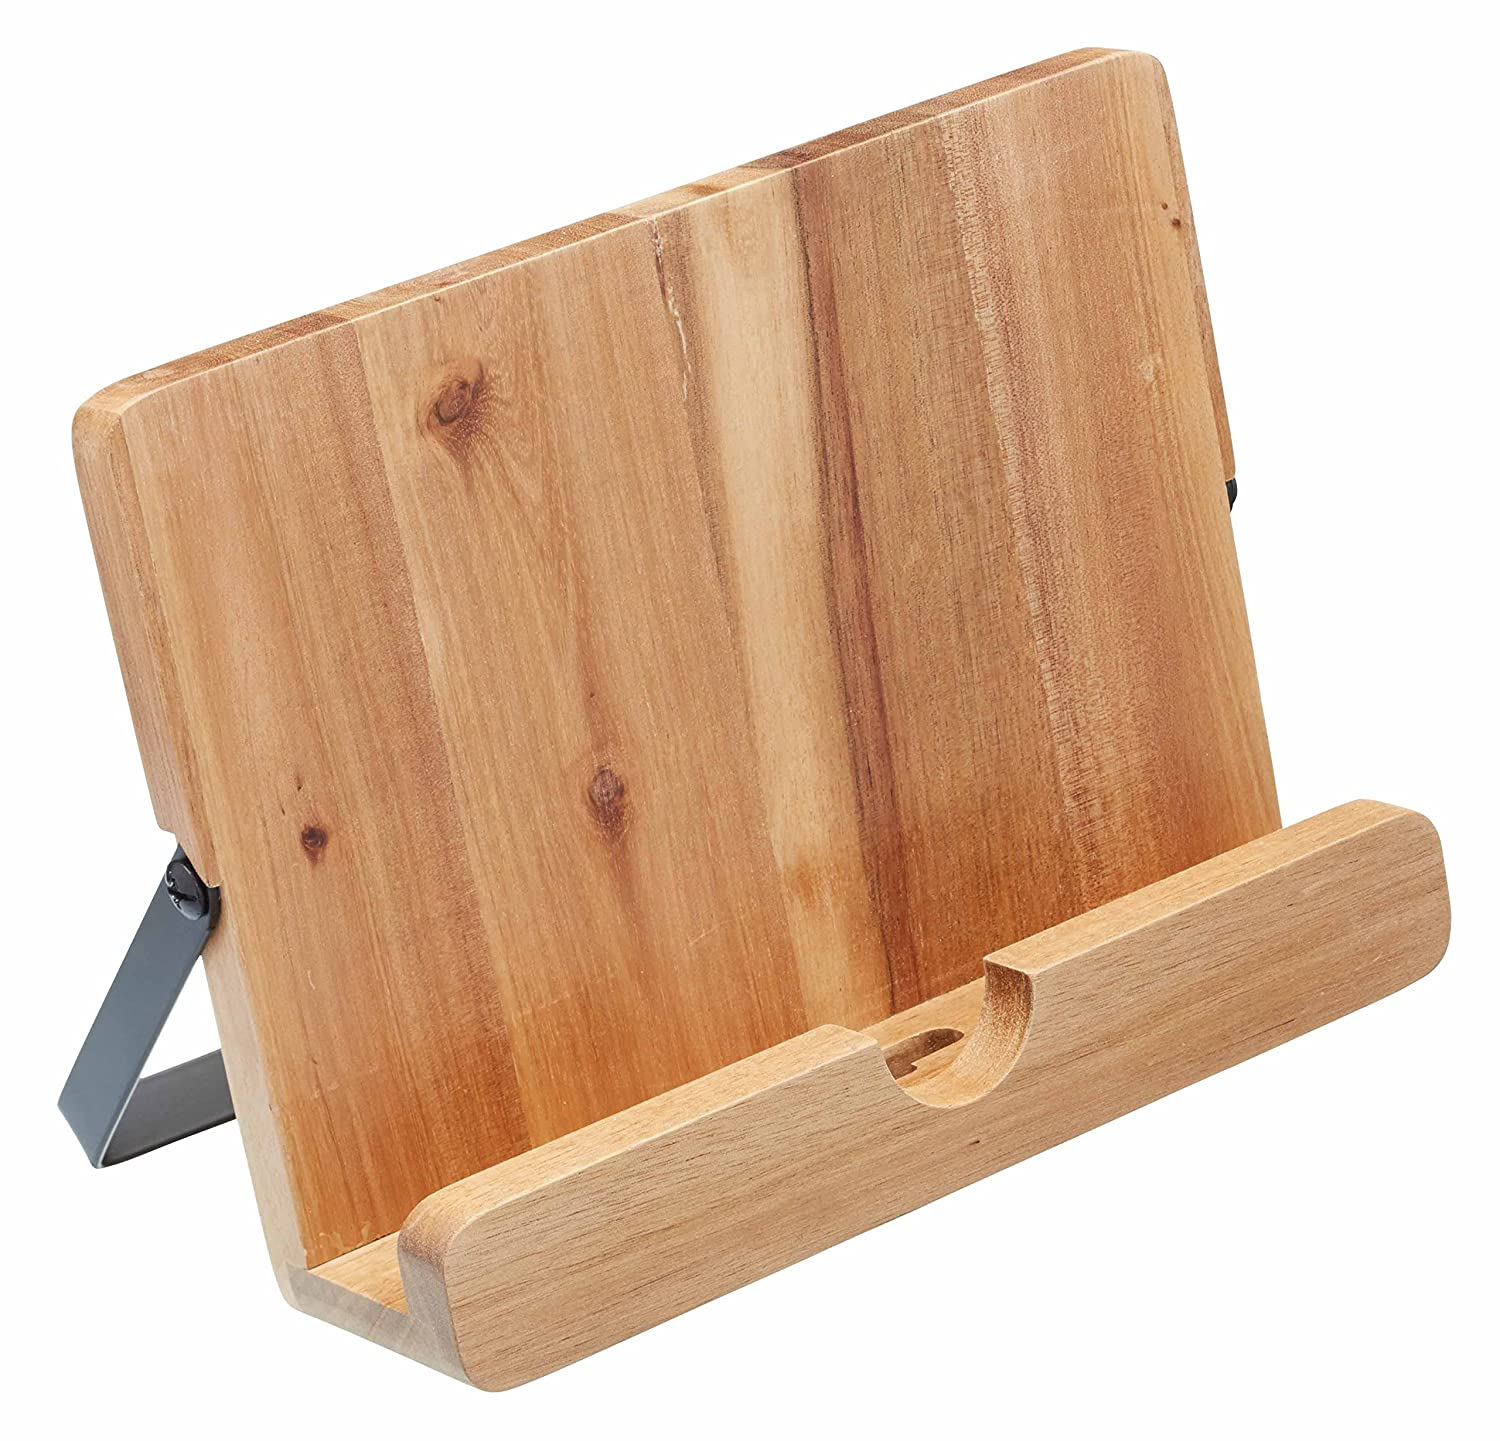 KitchenCraft Natural Elements Acacia Wood Cookbook / Tablet Stand NECBSTAND